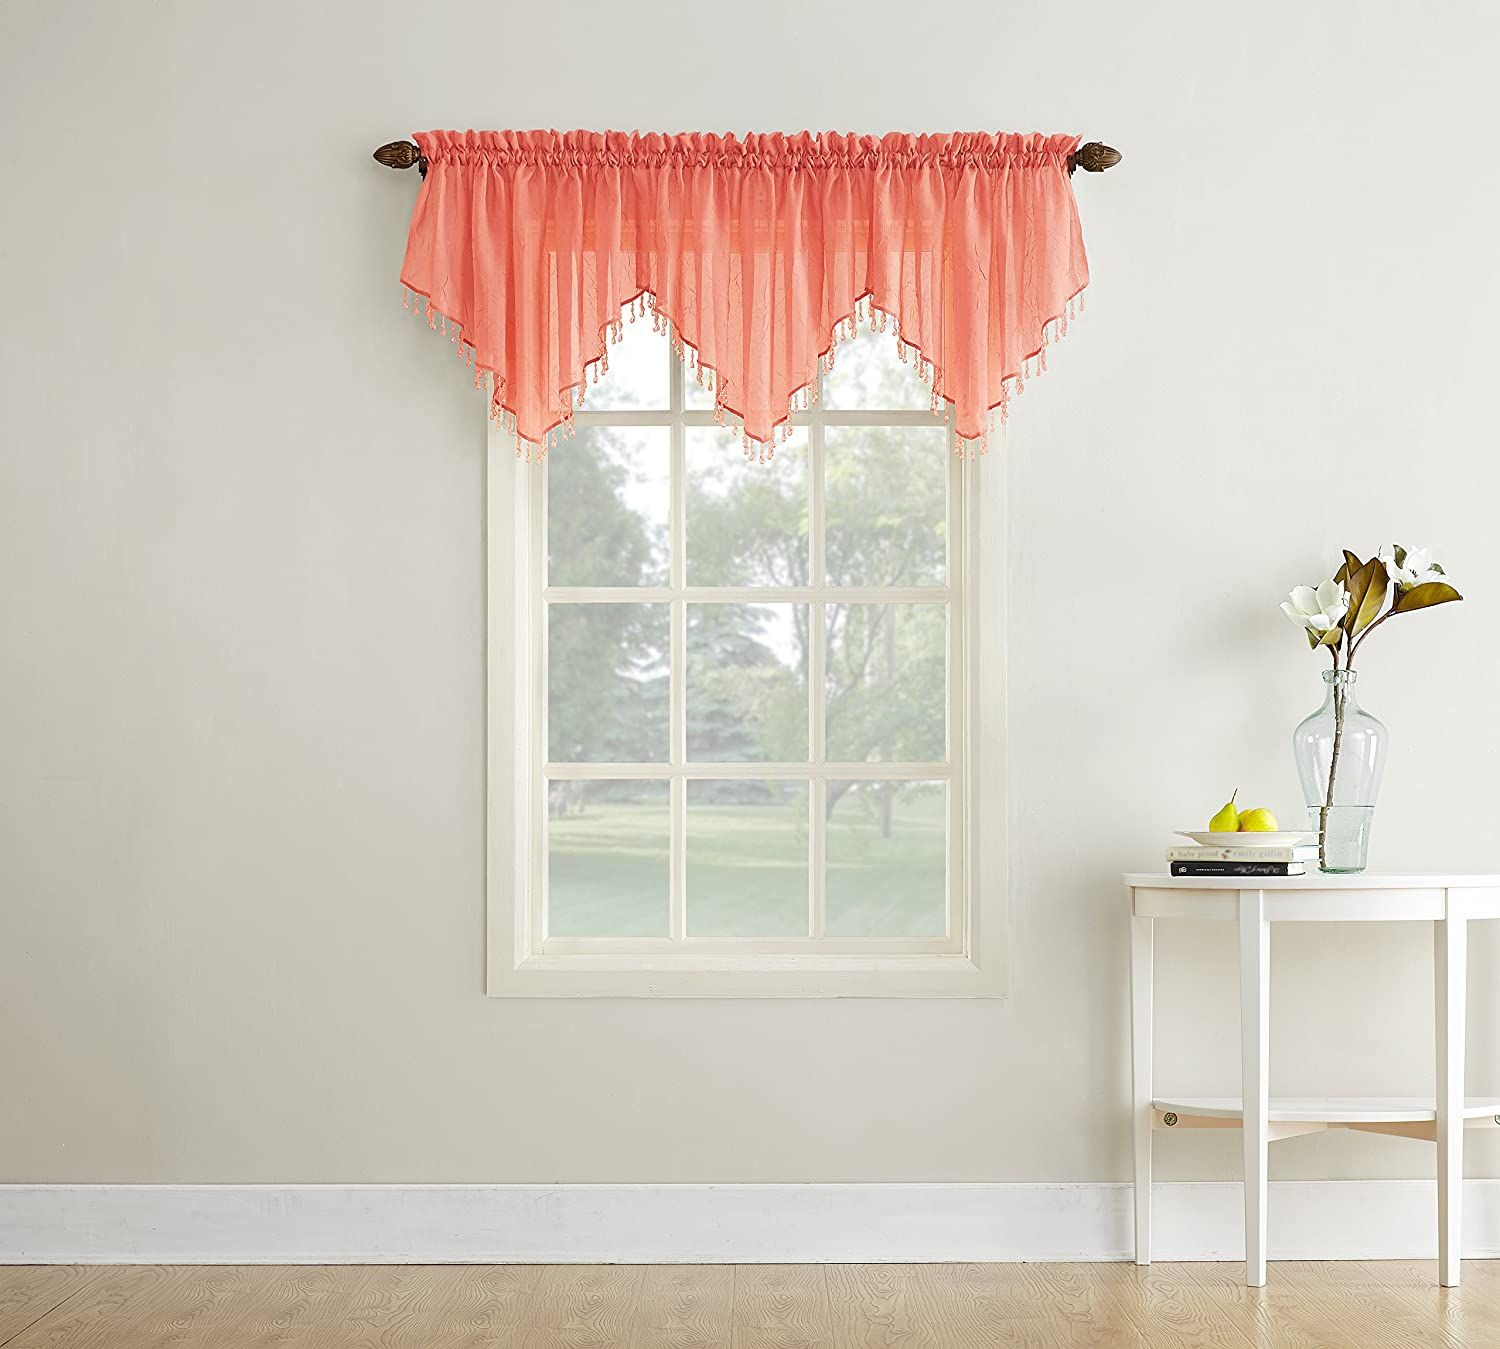 kitchen satiating phenomenal wonderful classic awesome valance curtains valances startling modern full for photo boy bedding curtain nursery orange treatments plus size windows window uk with design at set fresh of and ideas decorating